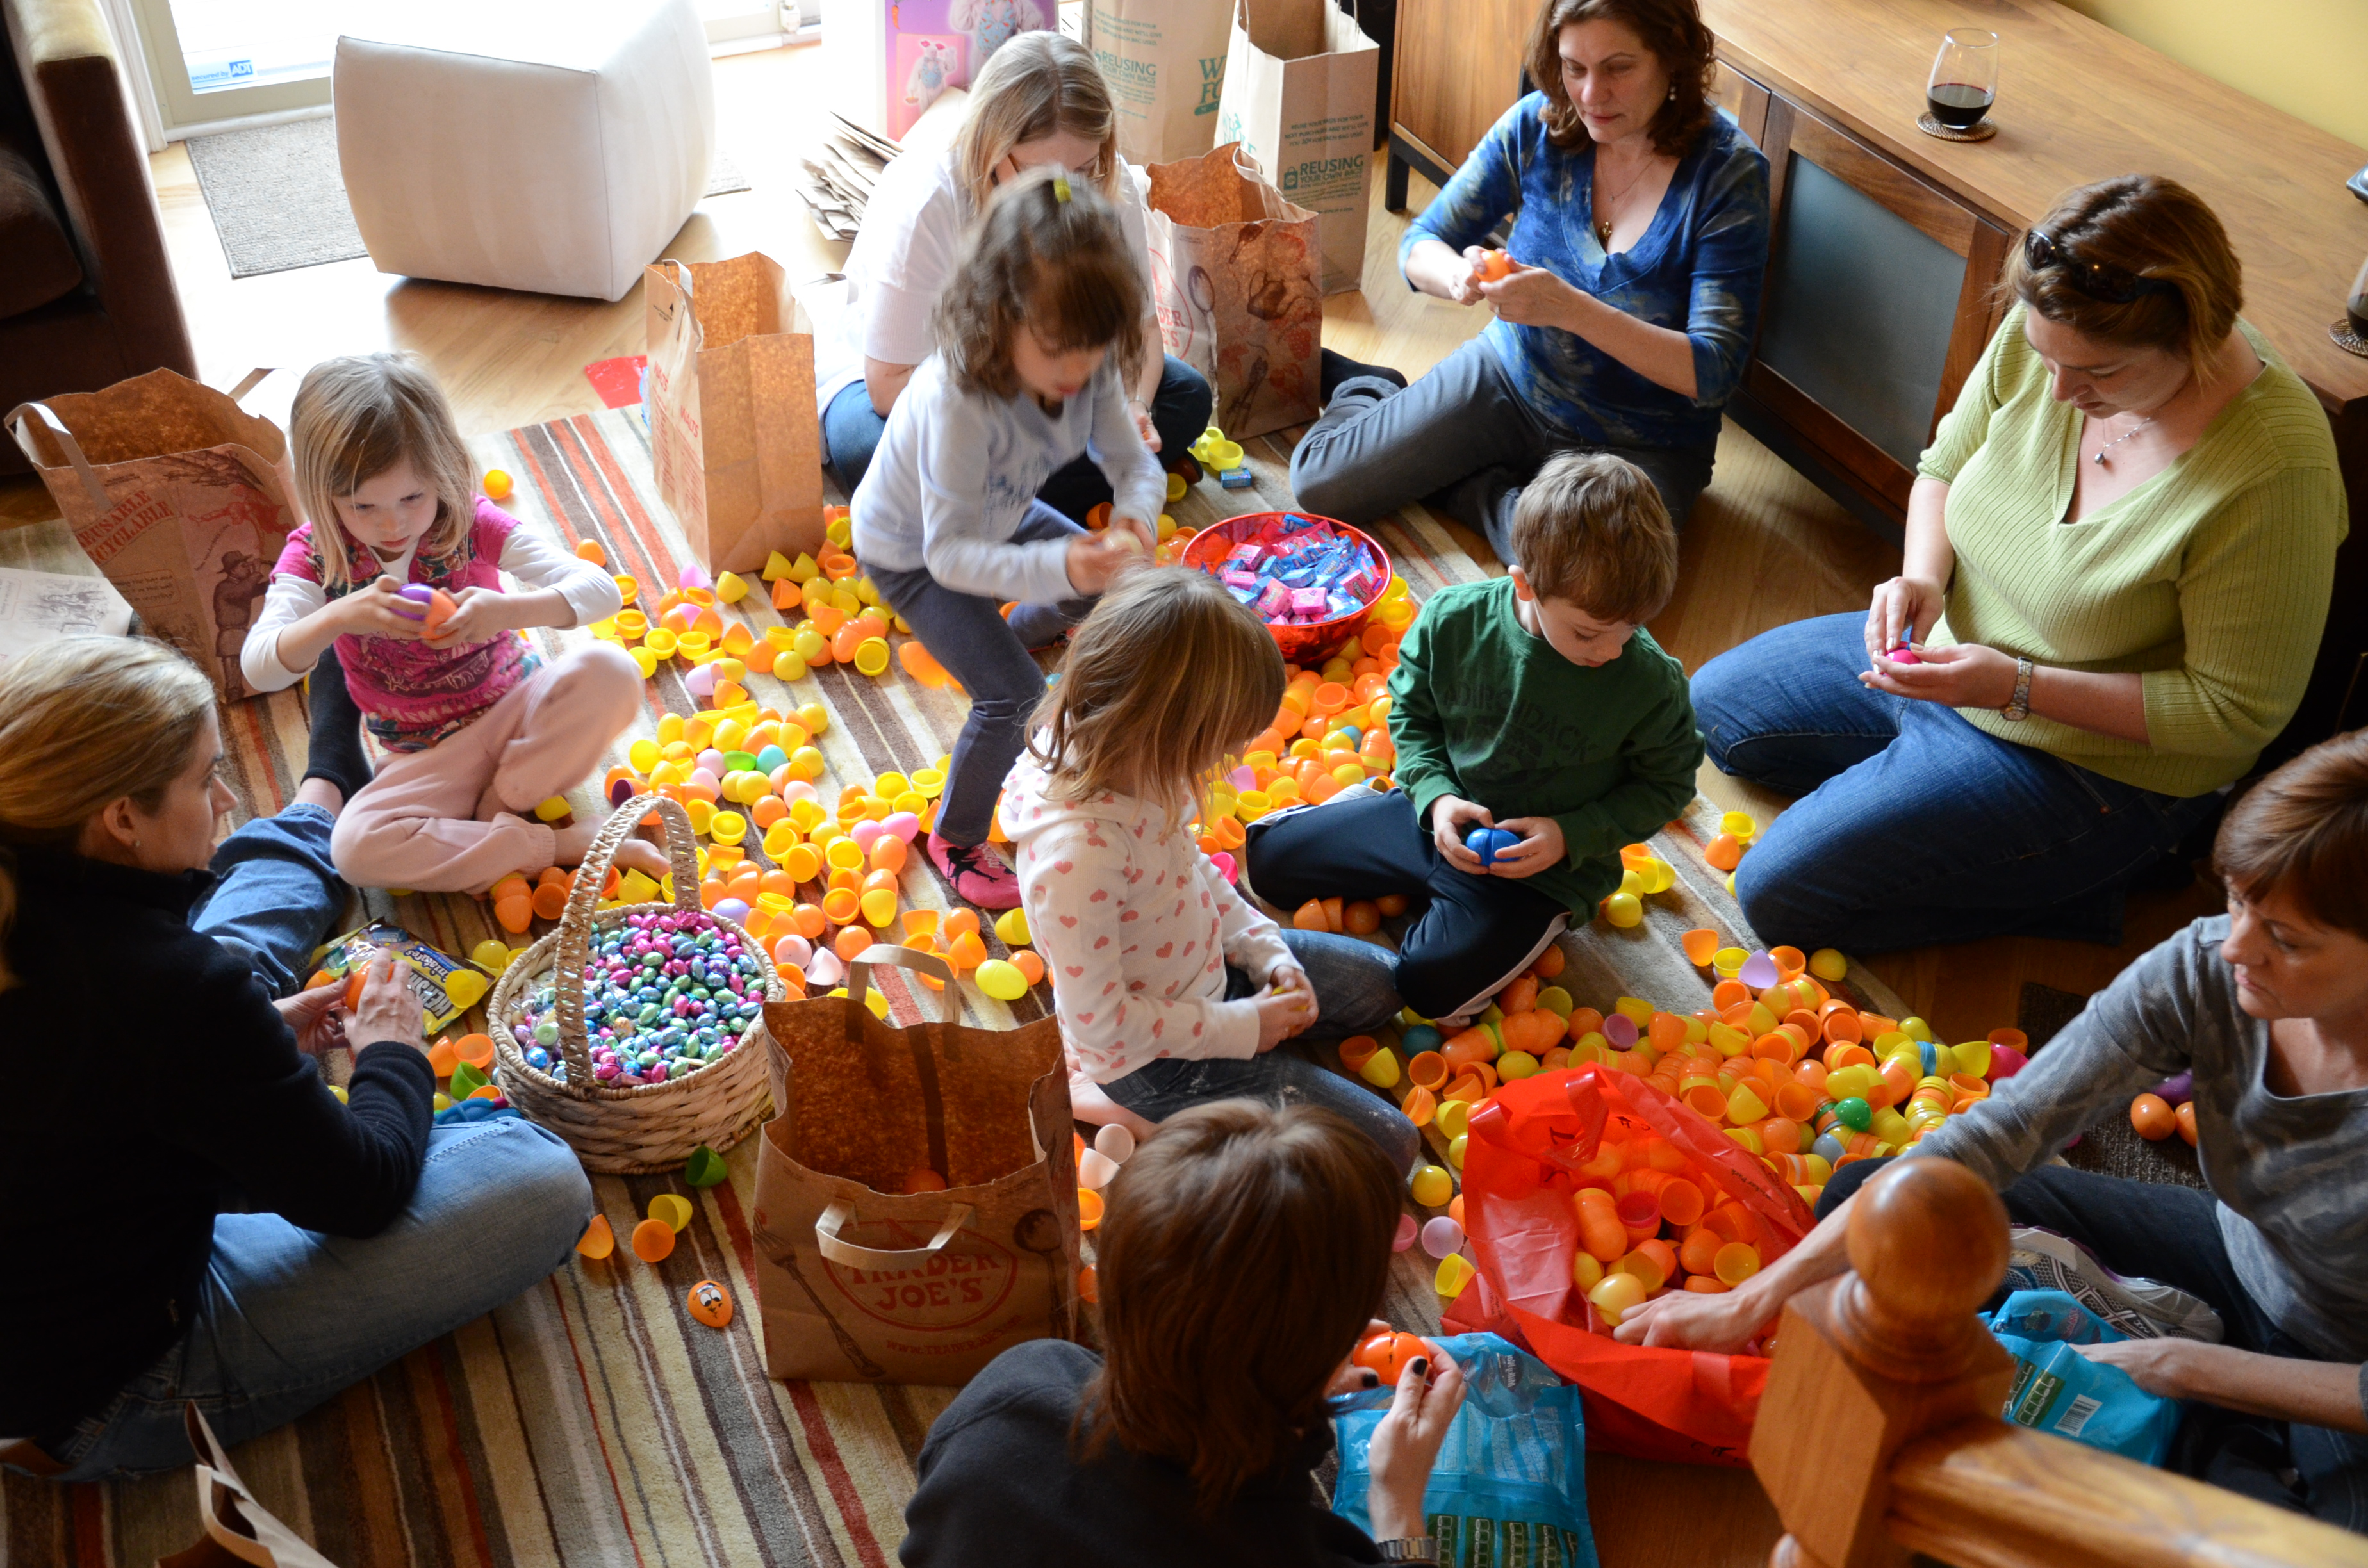 IMAGE: Egg Stuffing Party